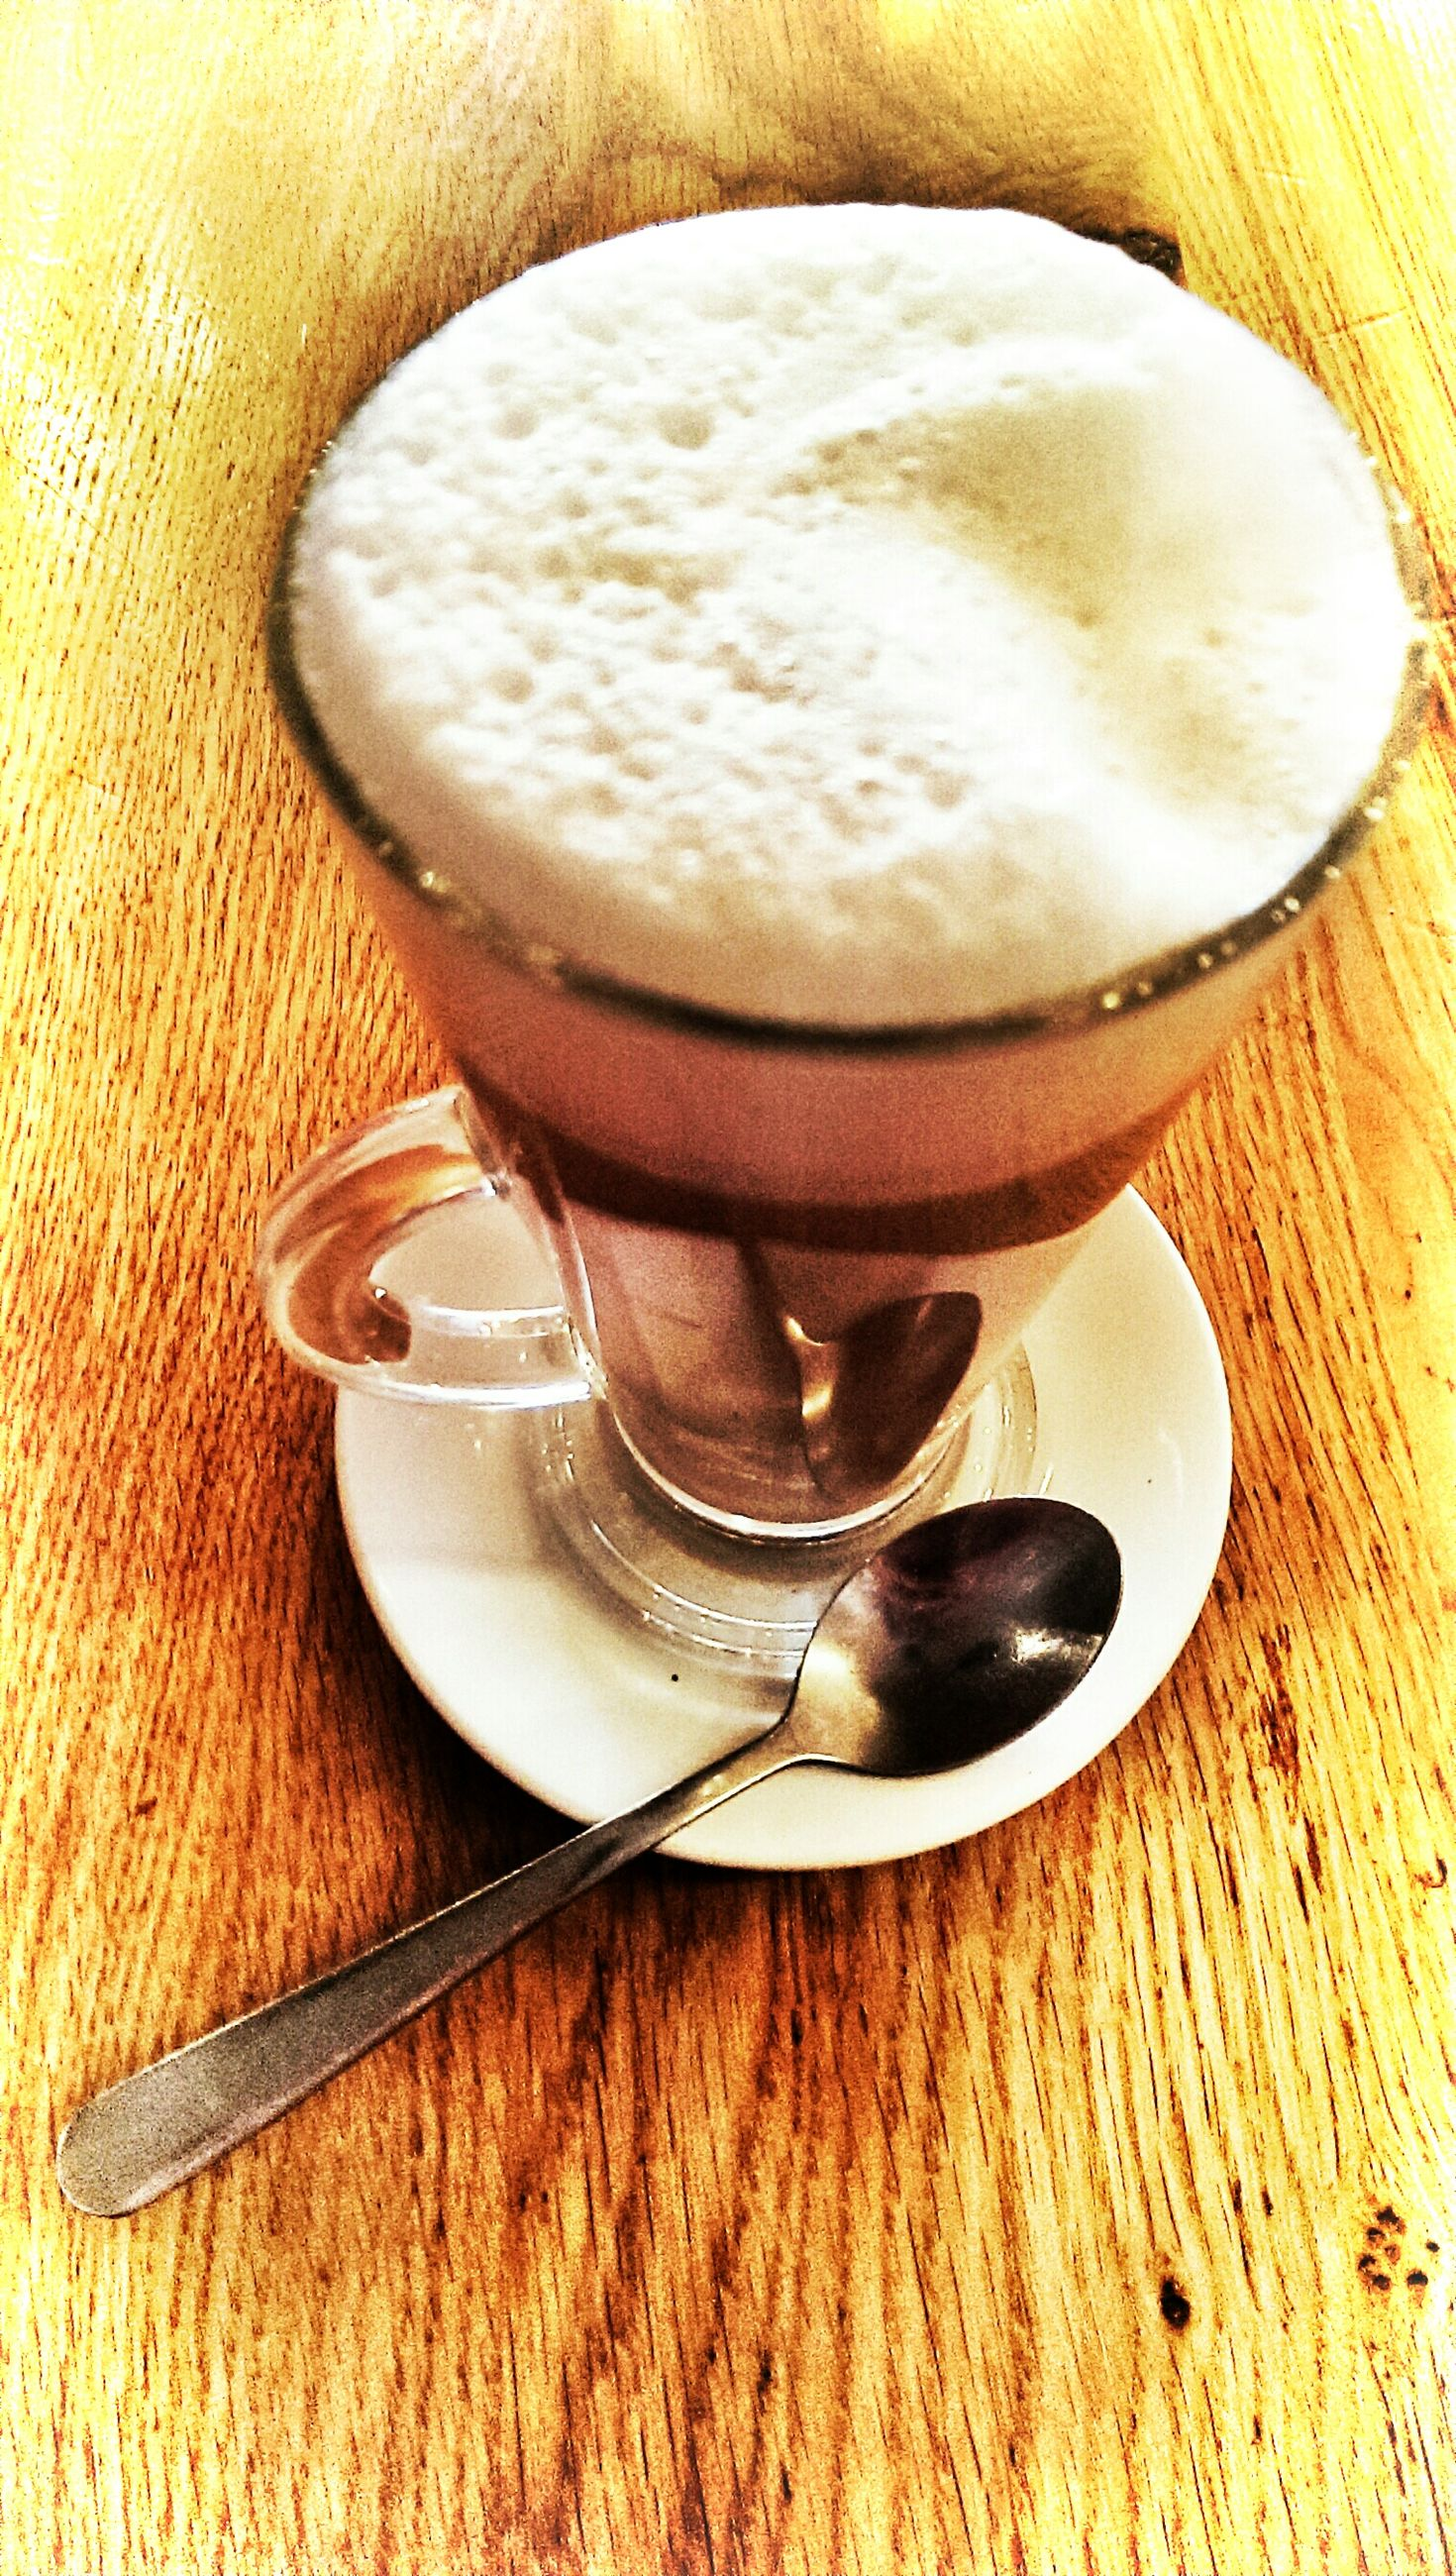 food and drink, indoors, drink, table, freshness, refreshment, still life, coffee - drink, coffee cup, frothy drink, close-up, spoon, high angle view, healthy eating, wood - material, coffee, directly above, food, cappuccino, saucer